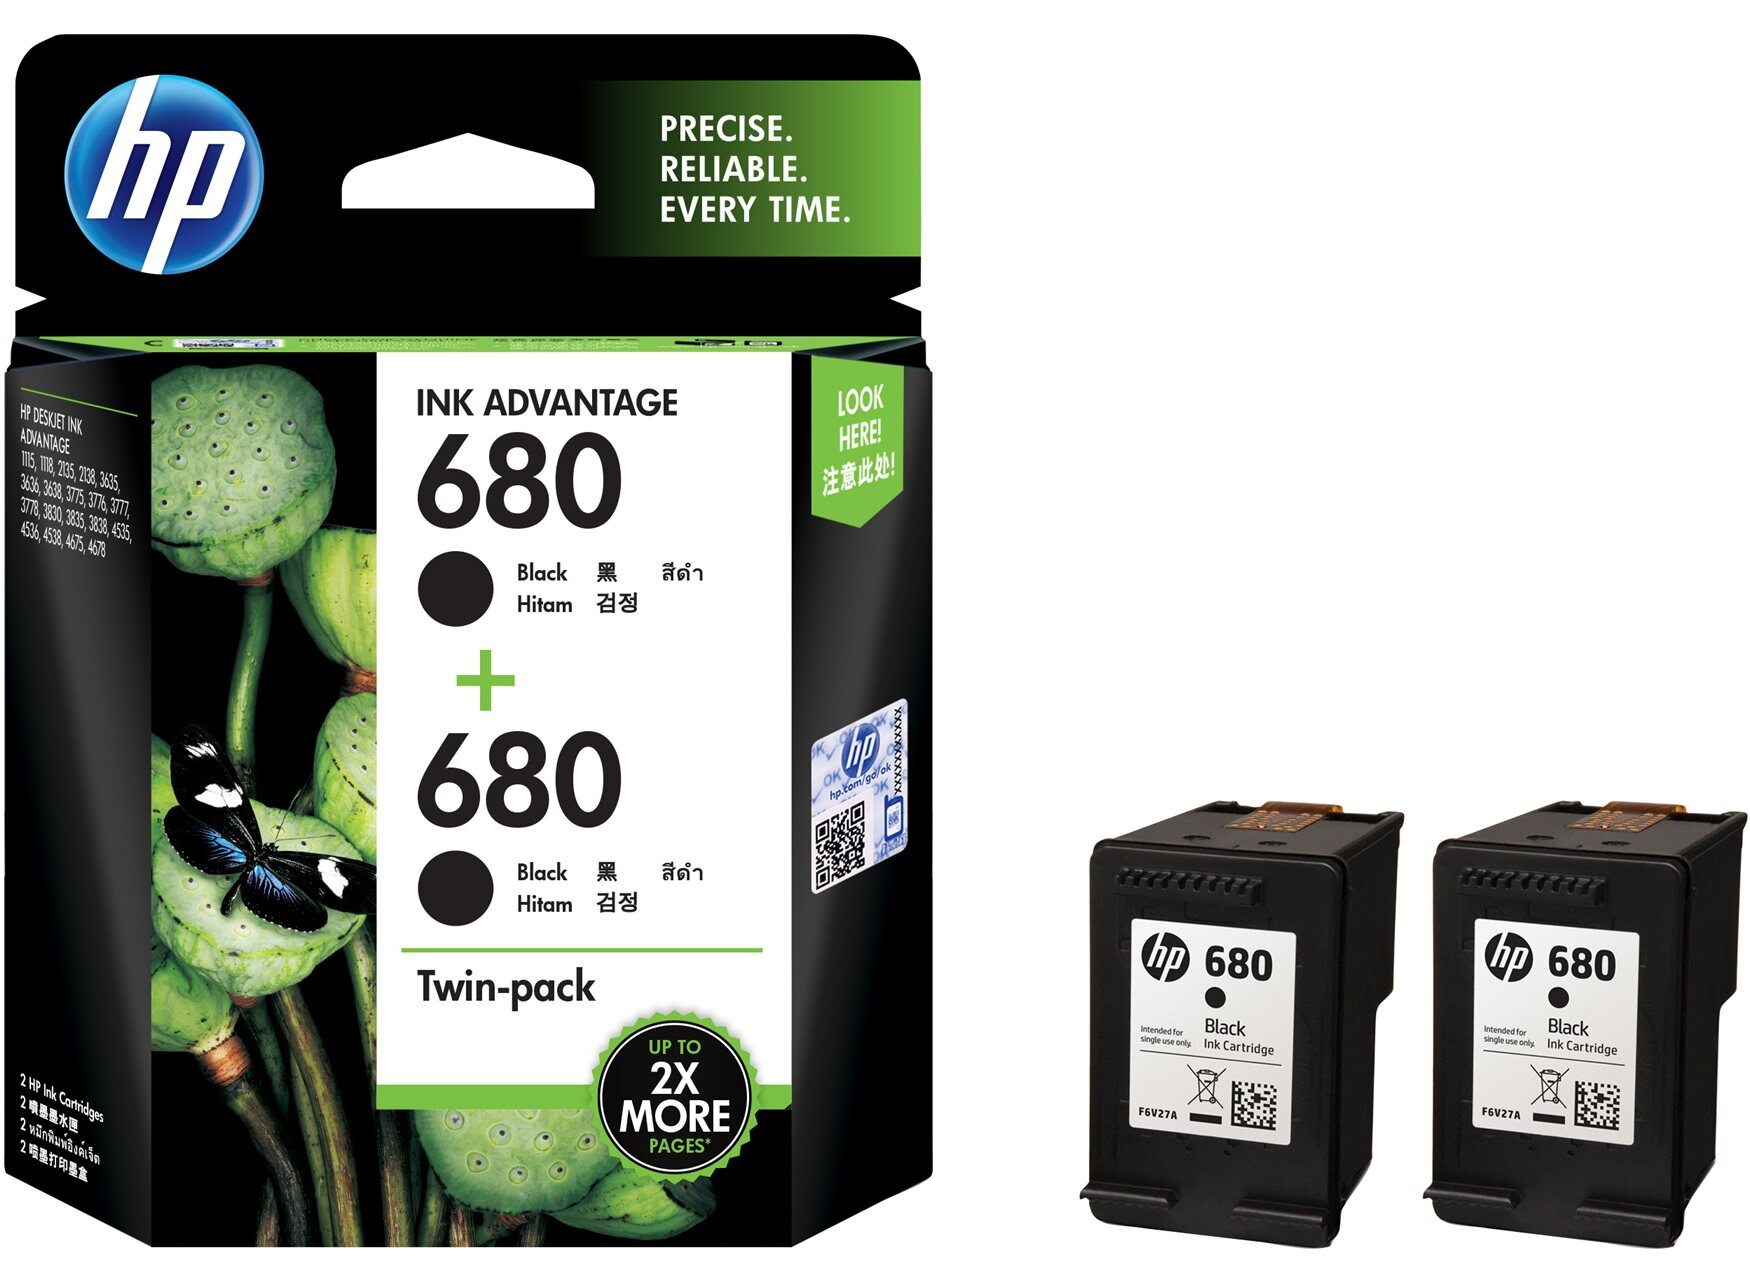 2 x HP 680 Combo pack (Black+Tri-color) + 2 x HP 680 Twin pack  (Black+Black) Original Ink Advantage Cartridges